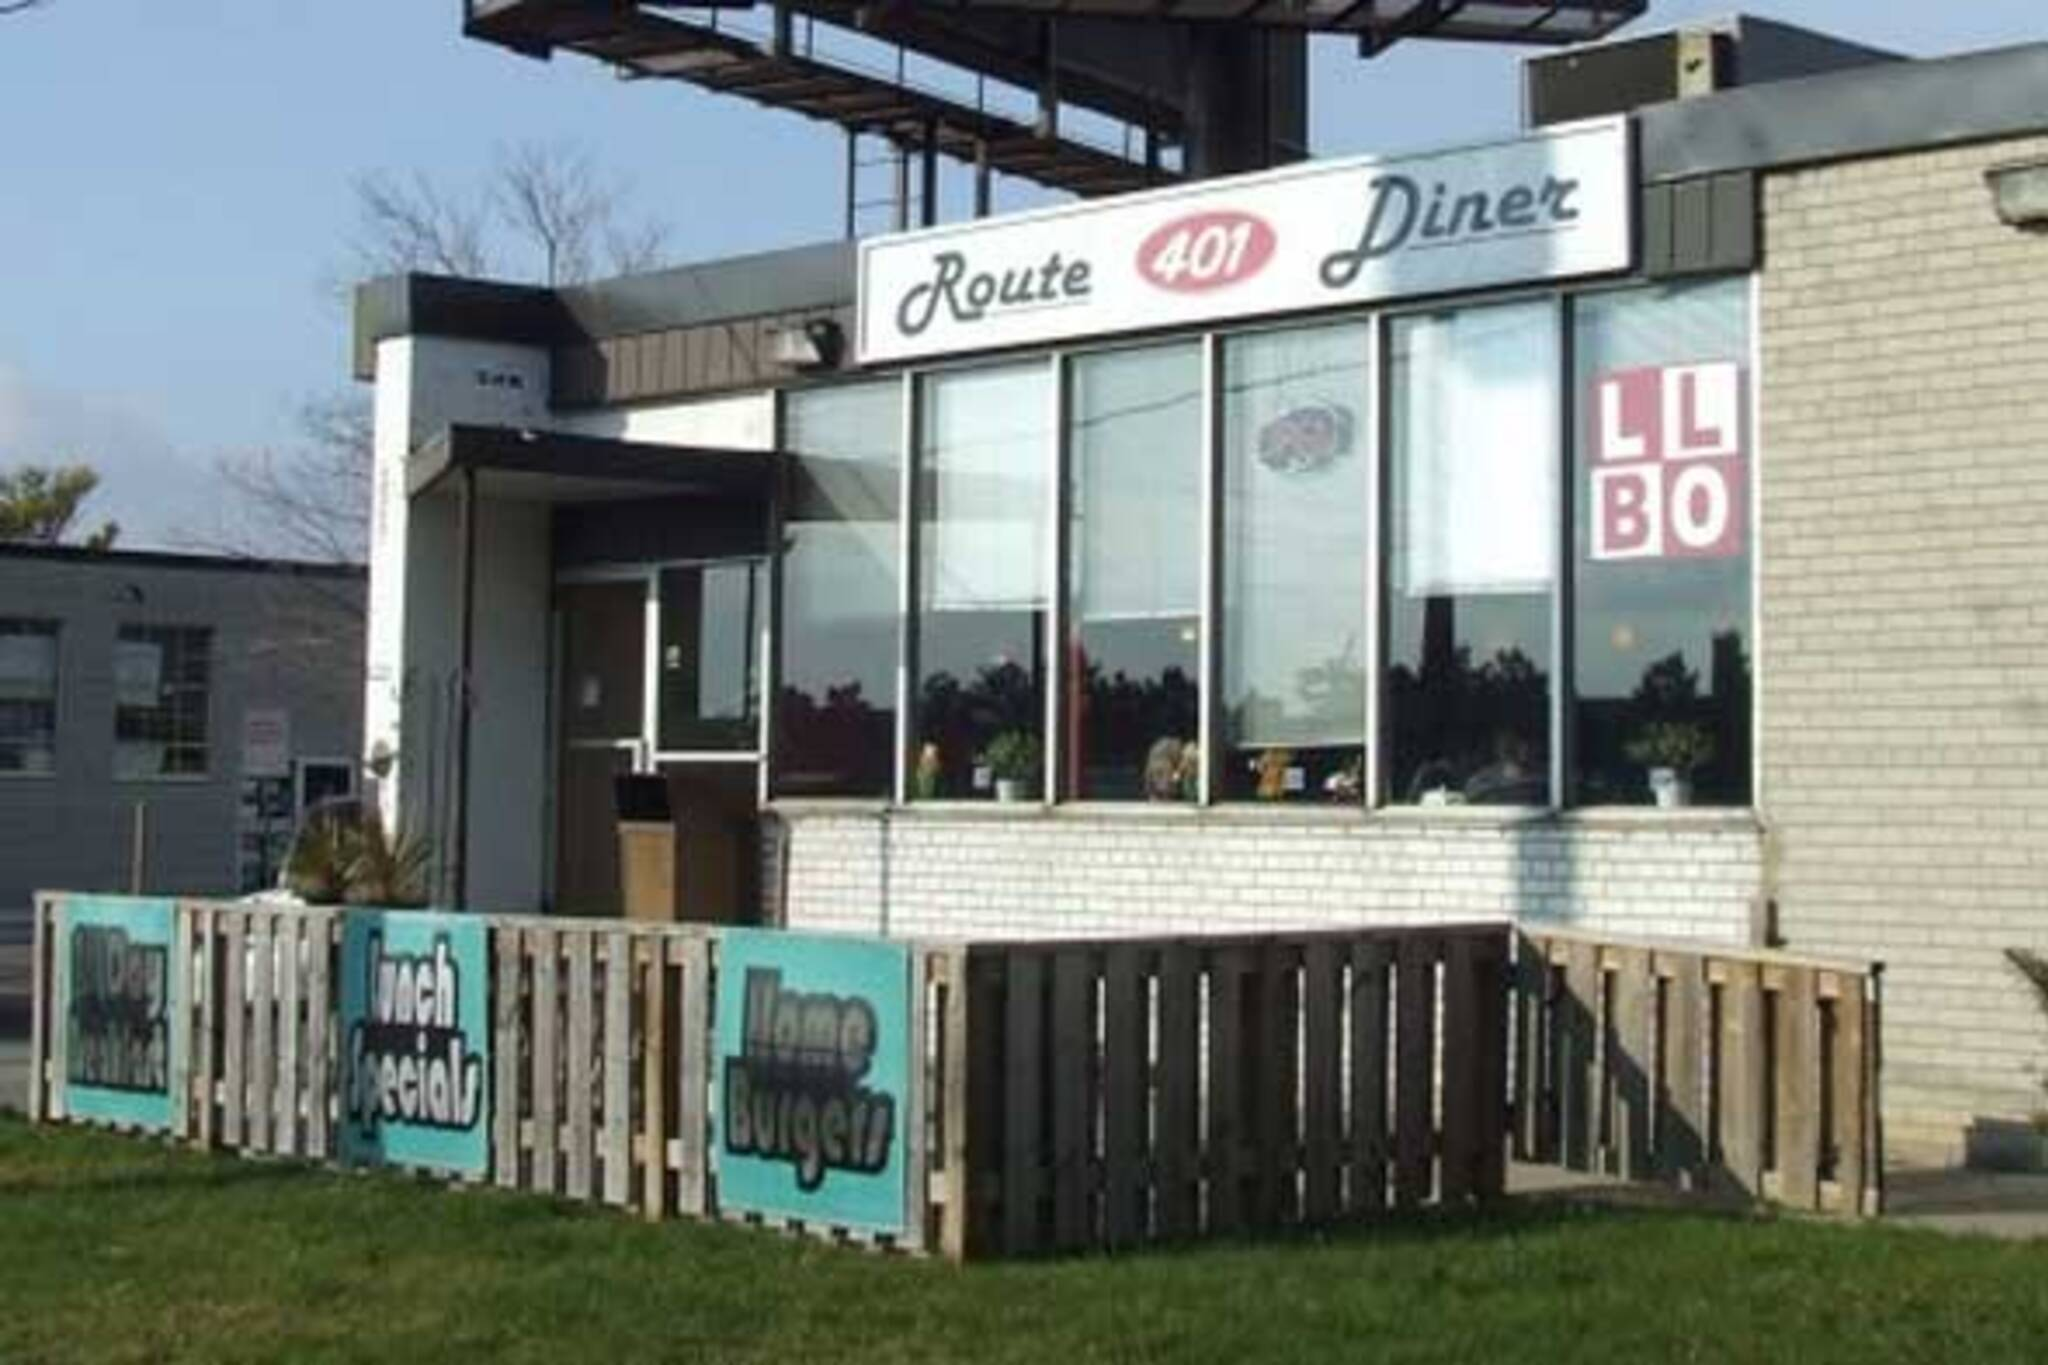 Route 401 Diner Toronto